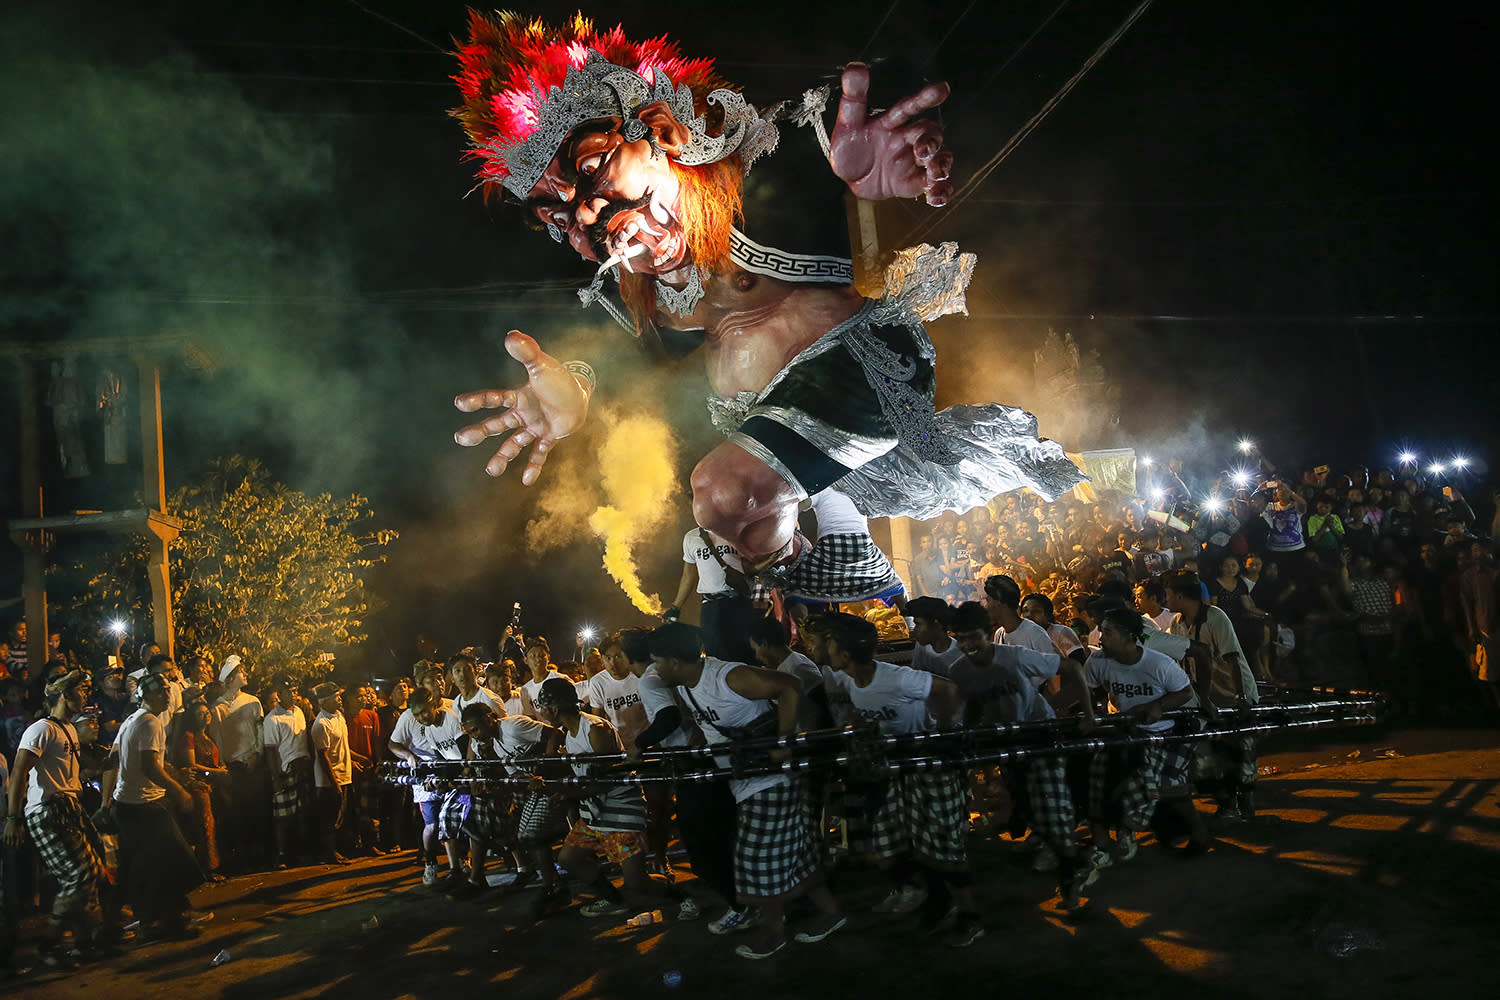 <p>Balinese people carry giant effigies in the form of the devil, whose local name is 'Ogoh-ogoh' during a parade before Nyepi Day, the Balinese Day of Silence, that marks the Balinese Hindu New Year in Gianyar, Bali, Indonesia, March 26, 2017.(Photo: Made Nagi/EPA) </p>